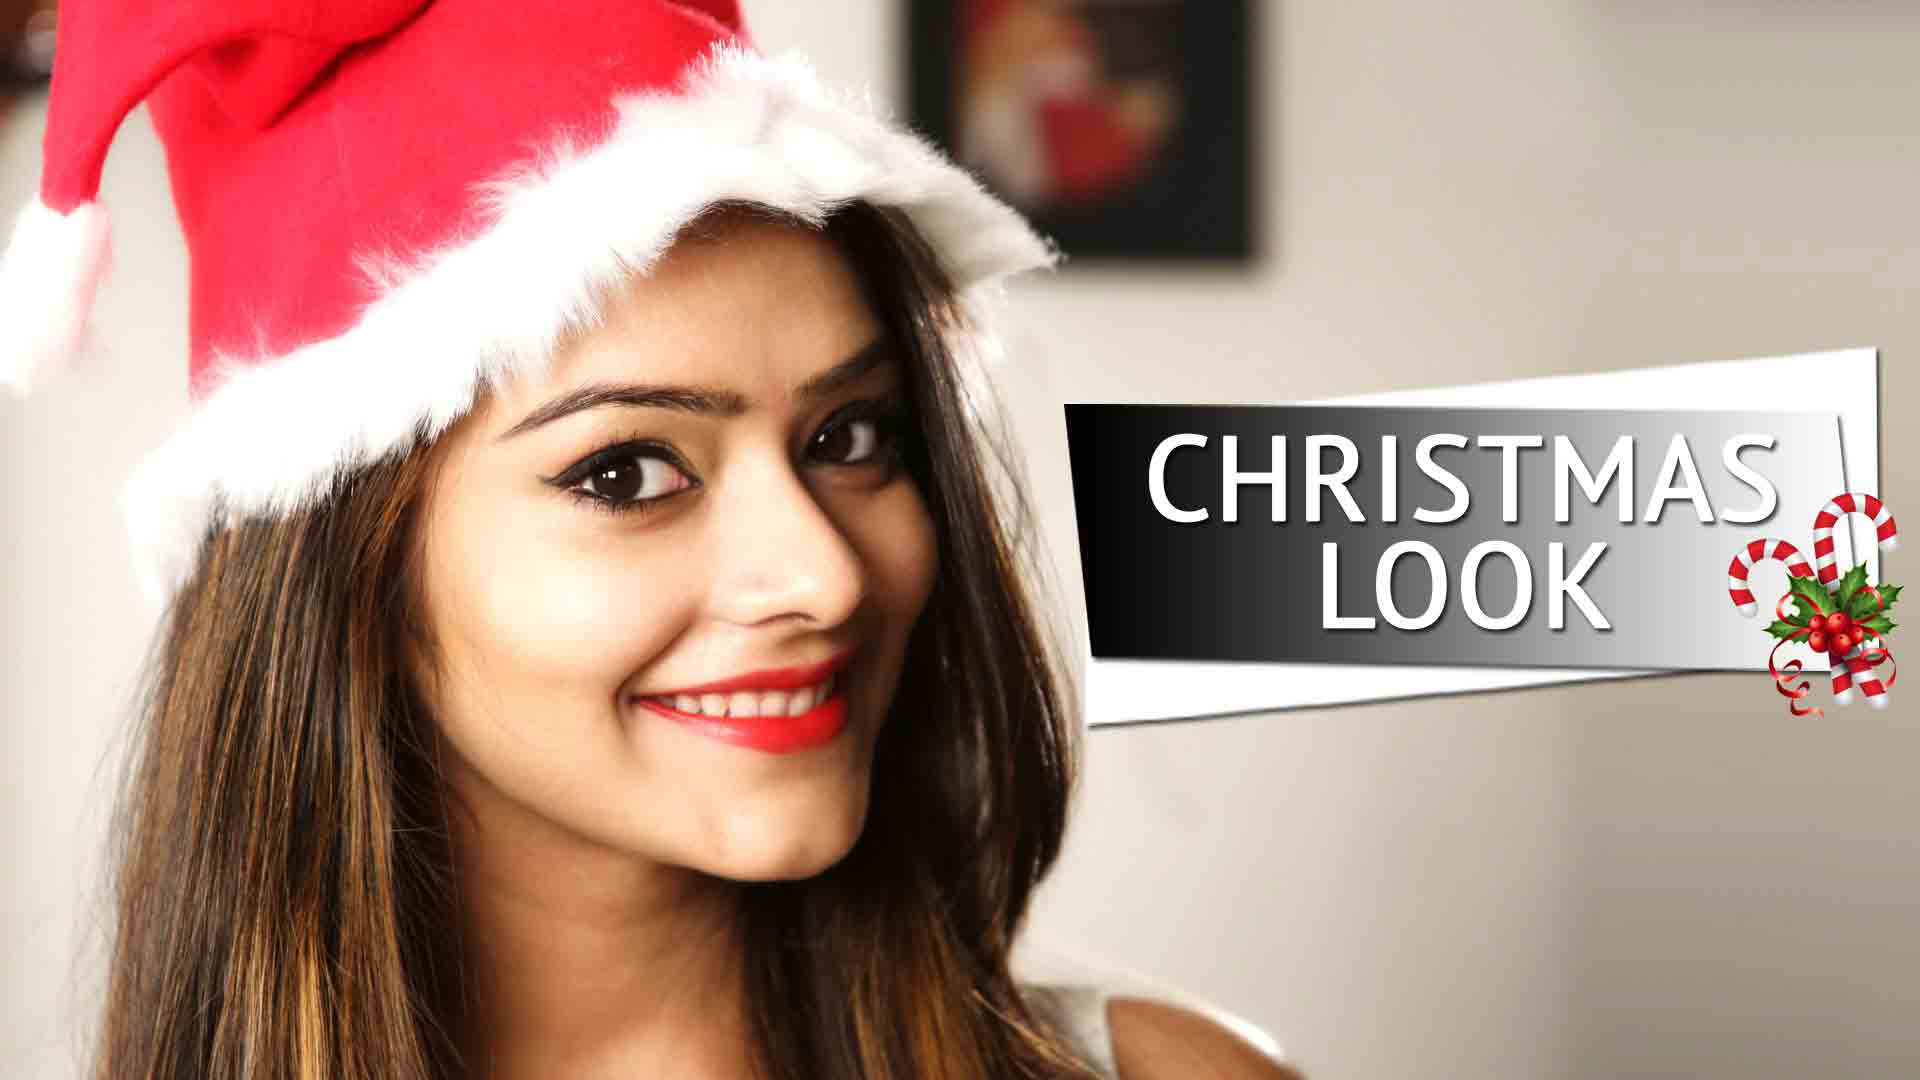 Christmas Makeup Ideas For Women In 2018